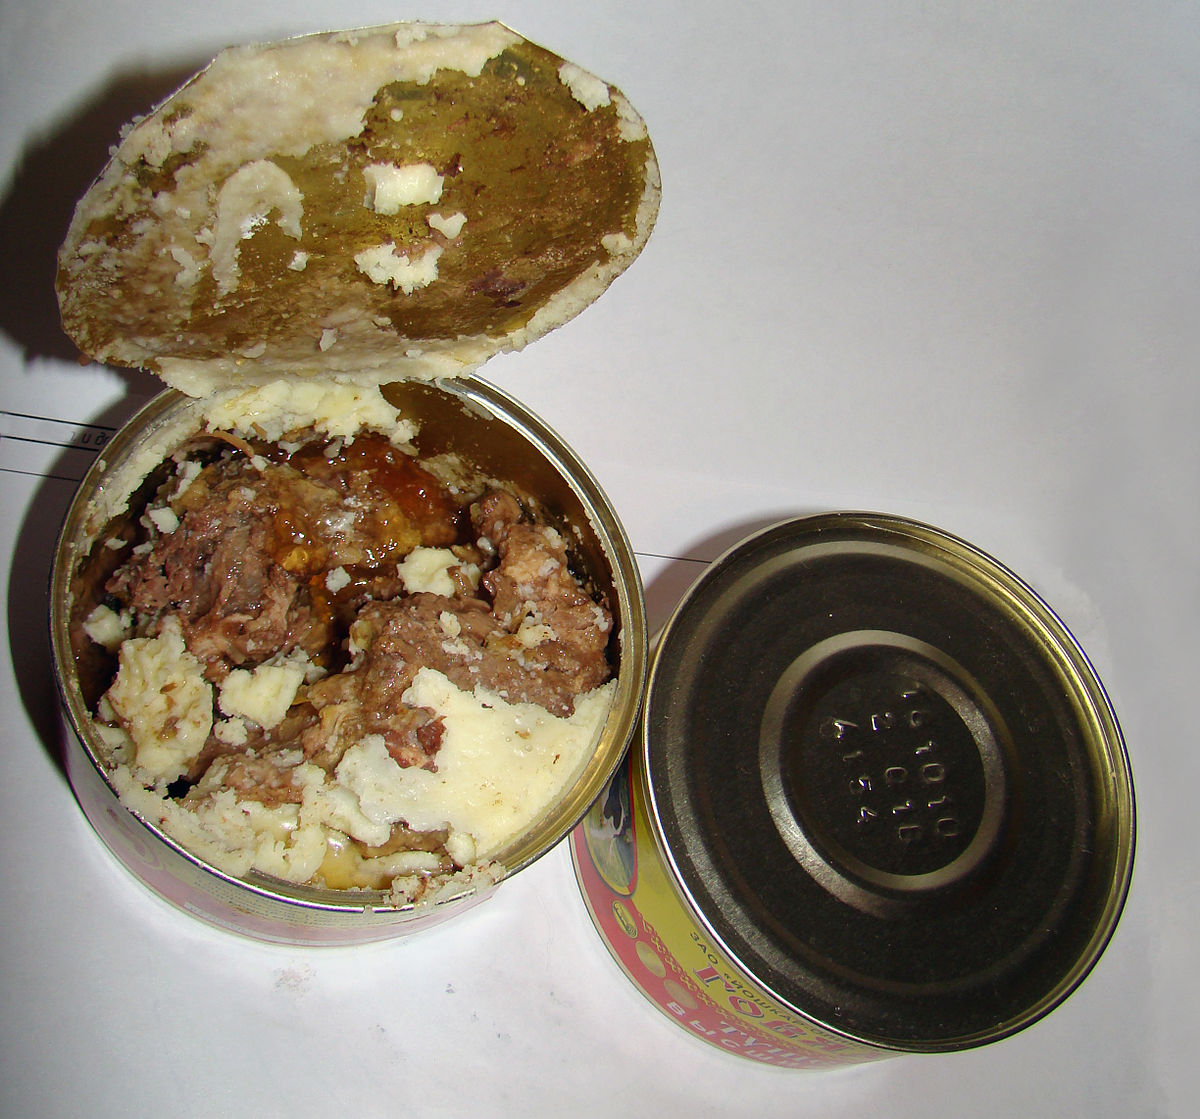 Strict Canned Food Diet In Dogs Cause Digestion Problems